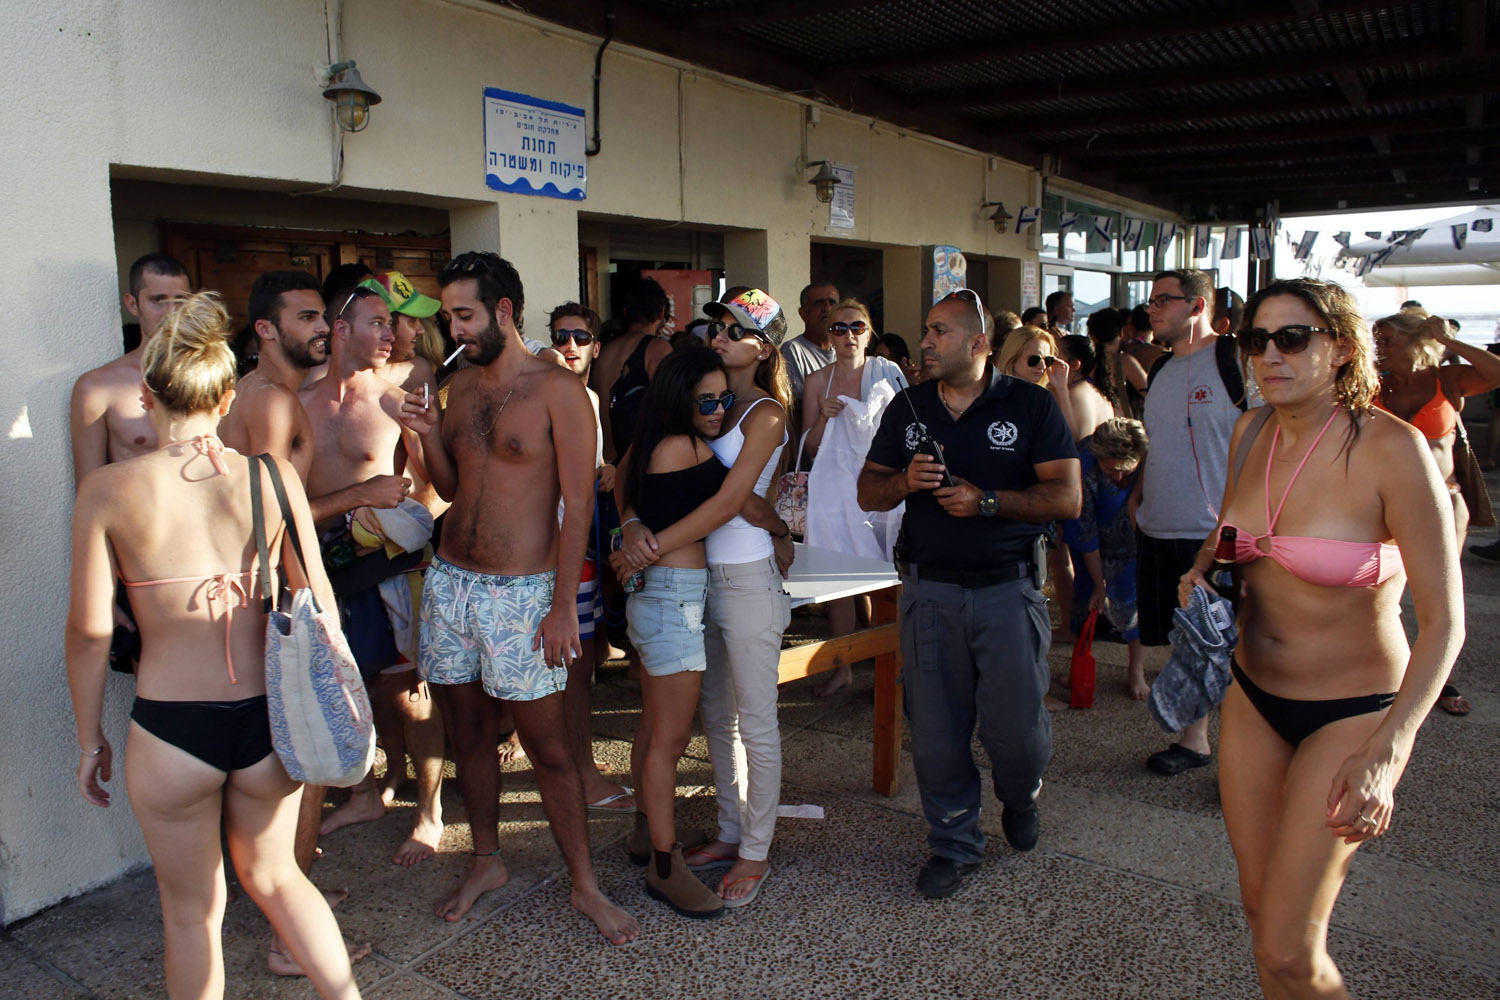 Jul. 15, 2014. Beach-goers take shelter as a siren sounds warning of incoming rockets in Tel Aviv. An Israeli civilian was killed by a rocket fired from the Gaza Strip on Tuesday, the military said, the first Israeli fatality in more than a week of fighting with Palestinian militants.